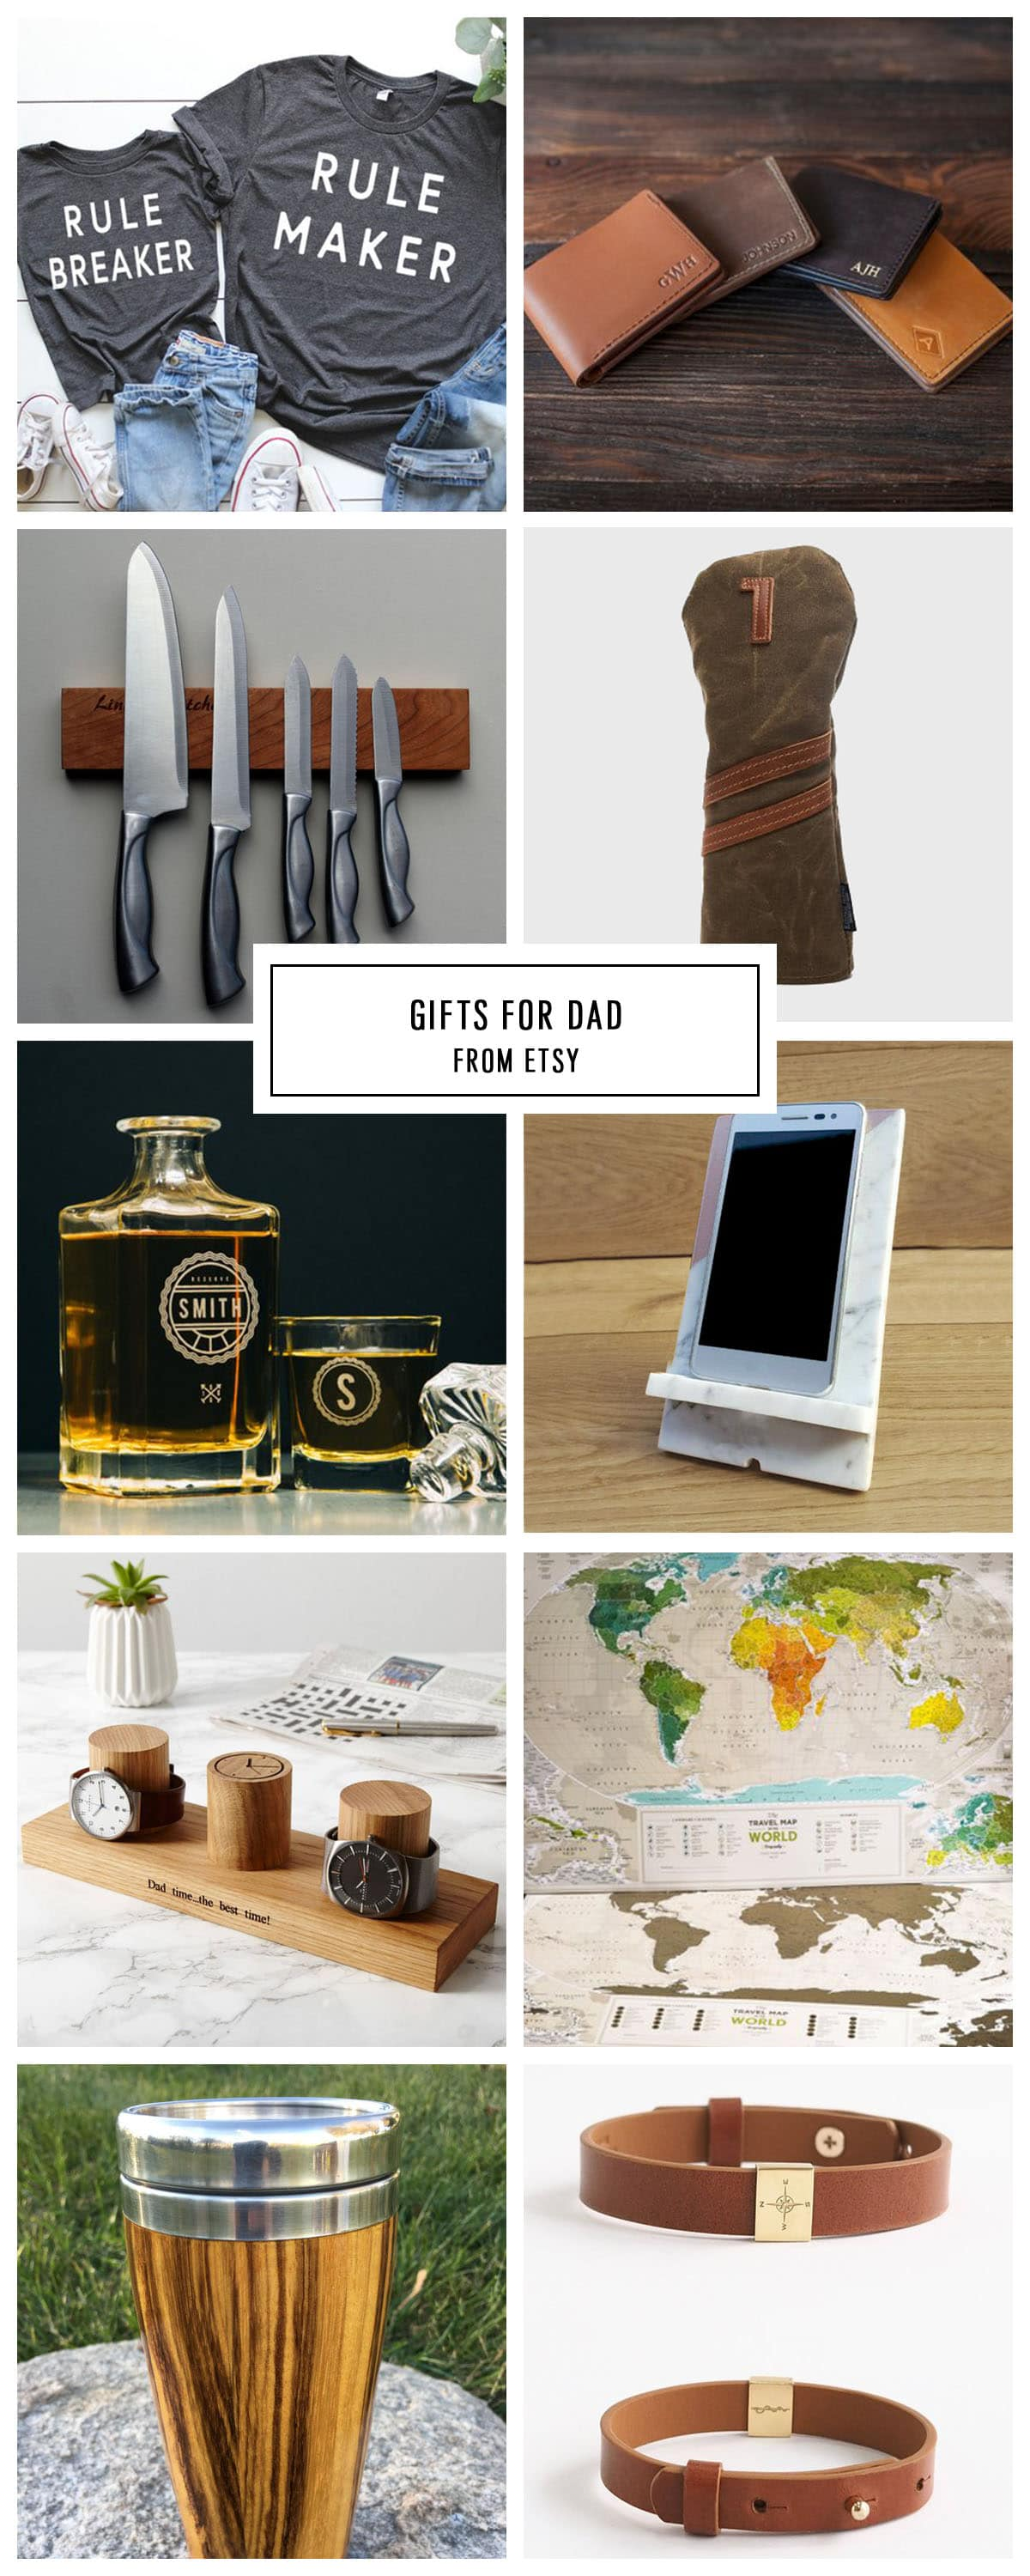 COMPLETE ETSY GIFT GUIDE FOR DAD UNDER $75 by Houston lifestyle blogger Ashley Rose of Sugar and Cloth -- #giftguide #christmas #entertaining #holidaygifts #presents